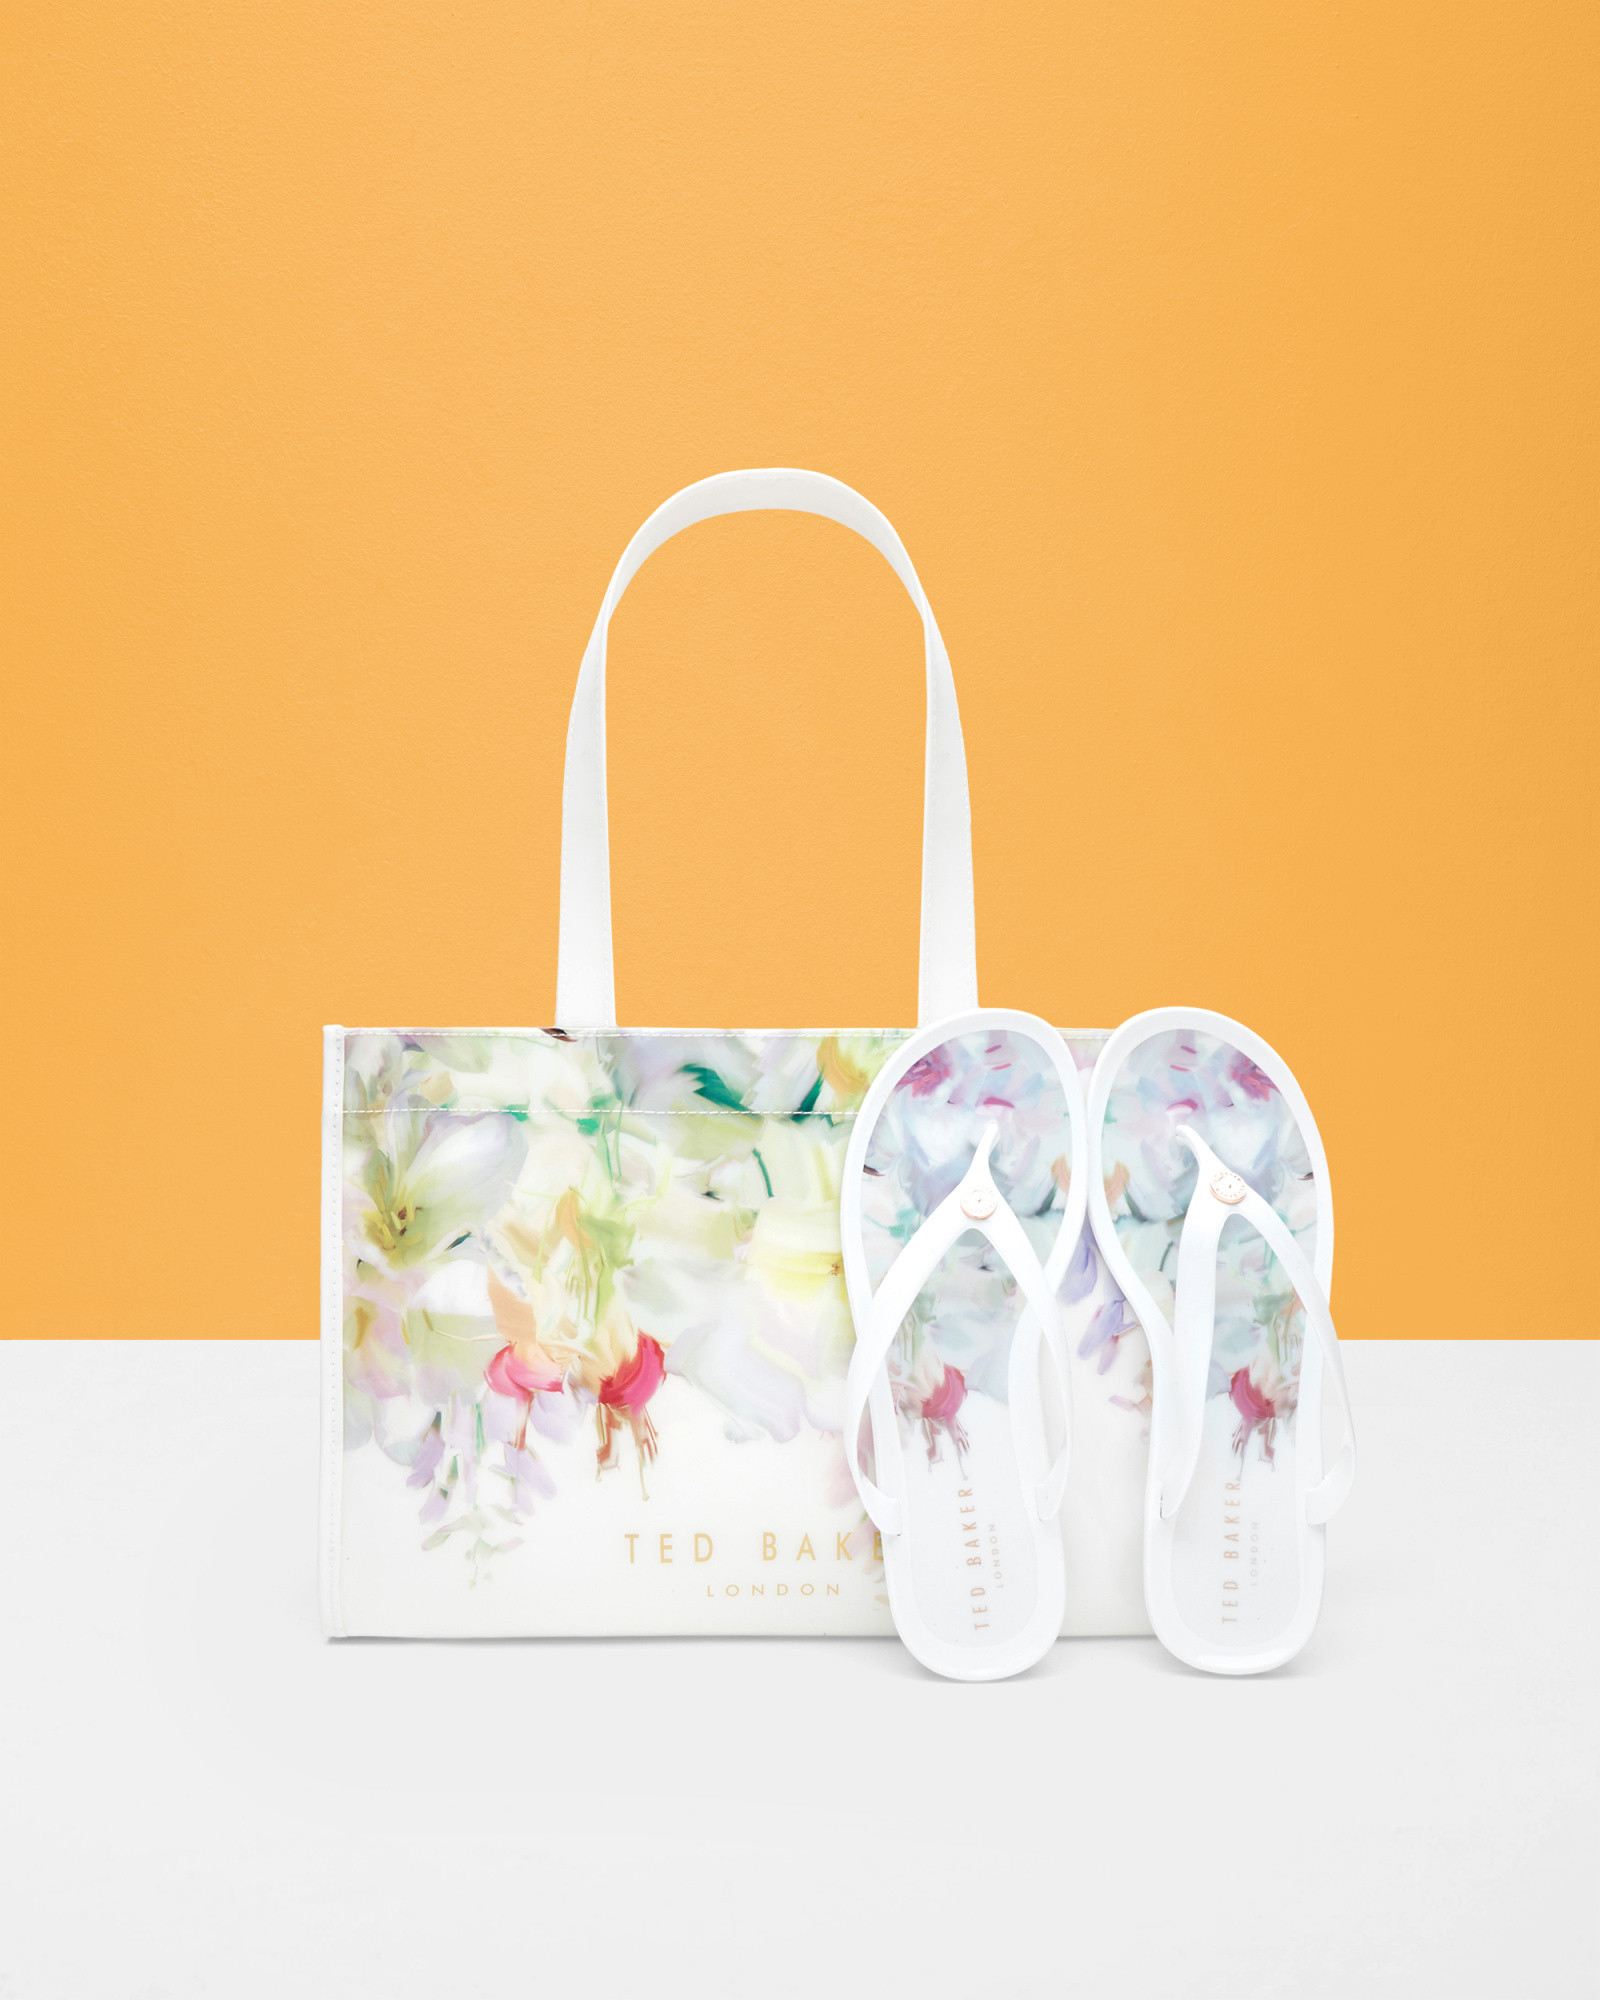 b7f5c7234 Ted Baker Hanging Gardens Flip Flop And Bag Set in White - Lyst